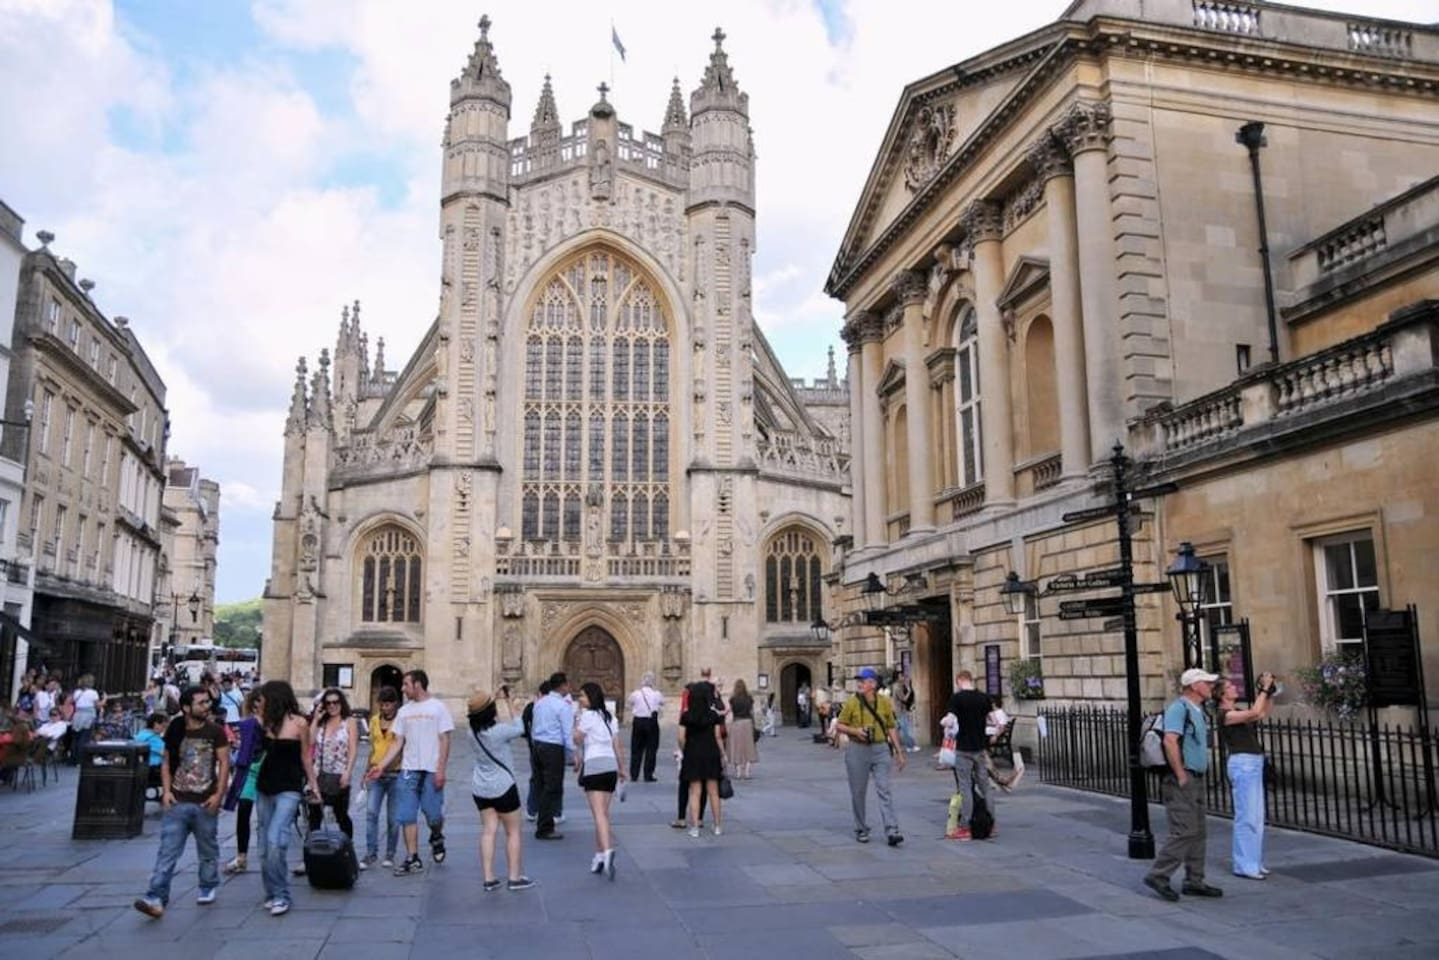 Less than a minute's walking distance to Bath Abbey and The Roman Baths.